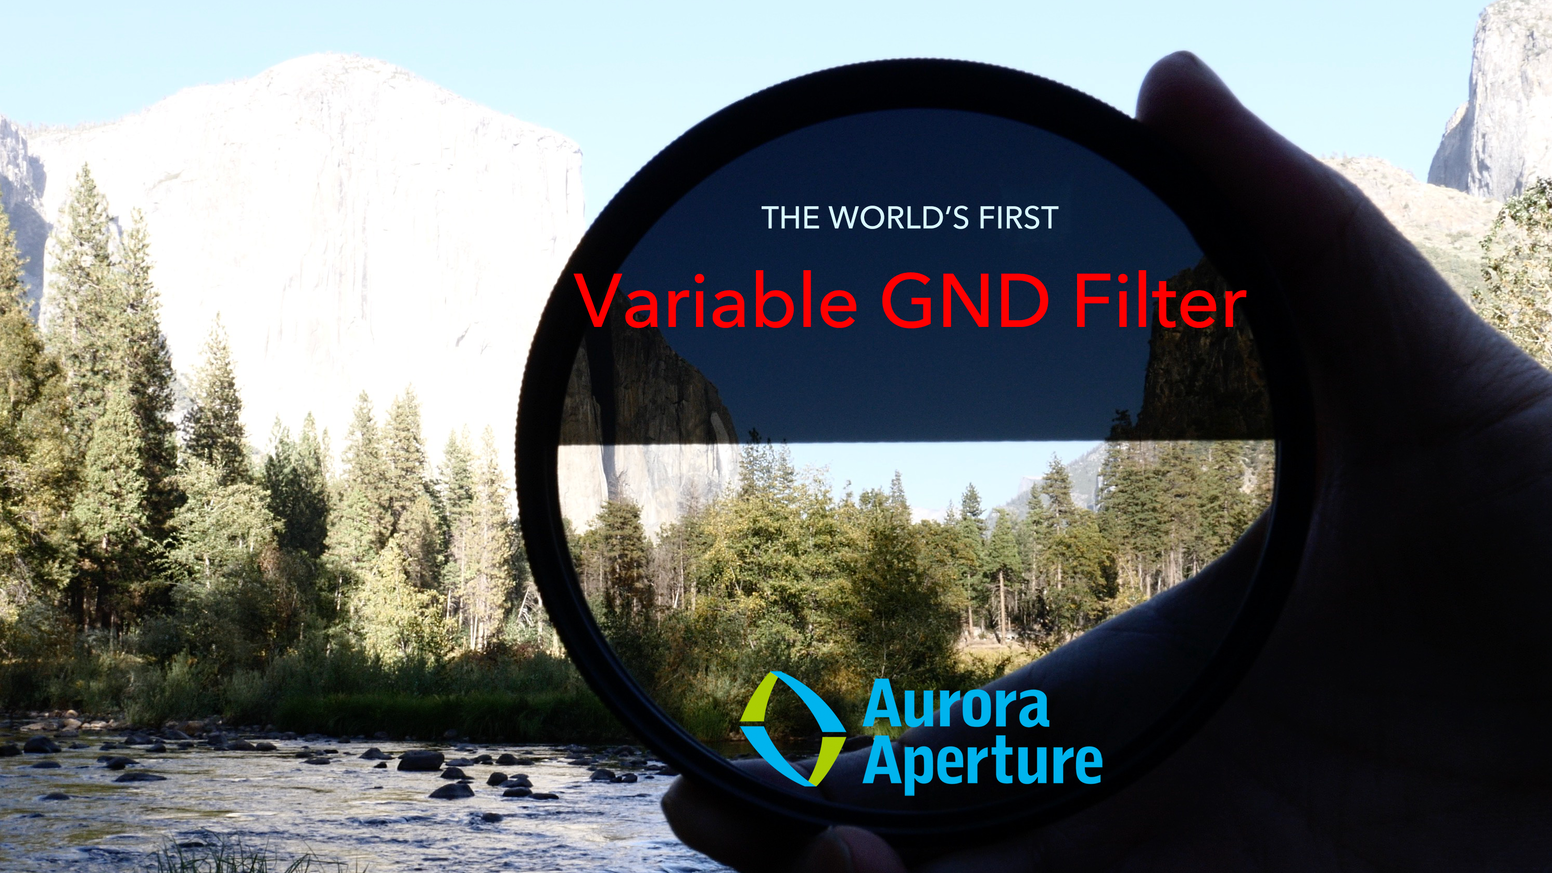 World's First Variable GND Filter By Aurora